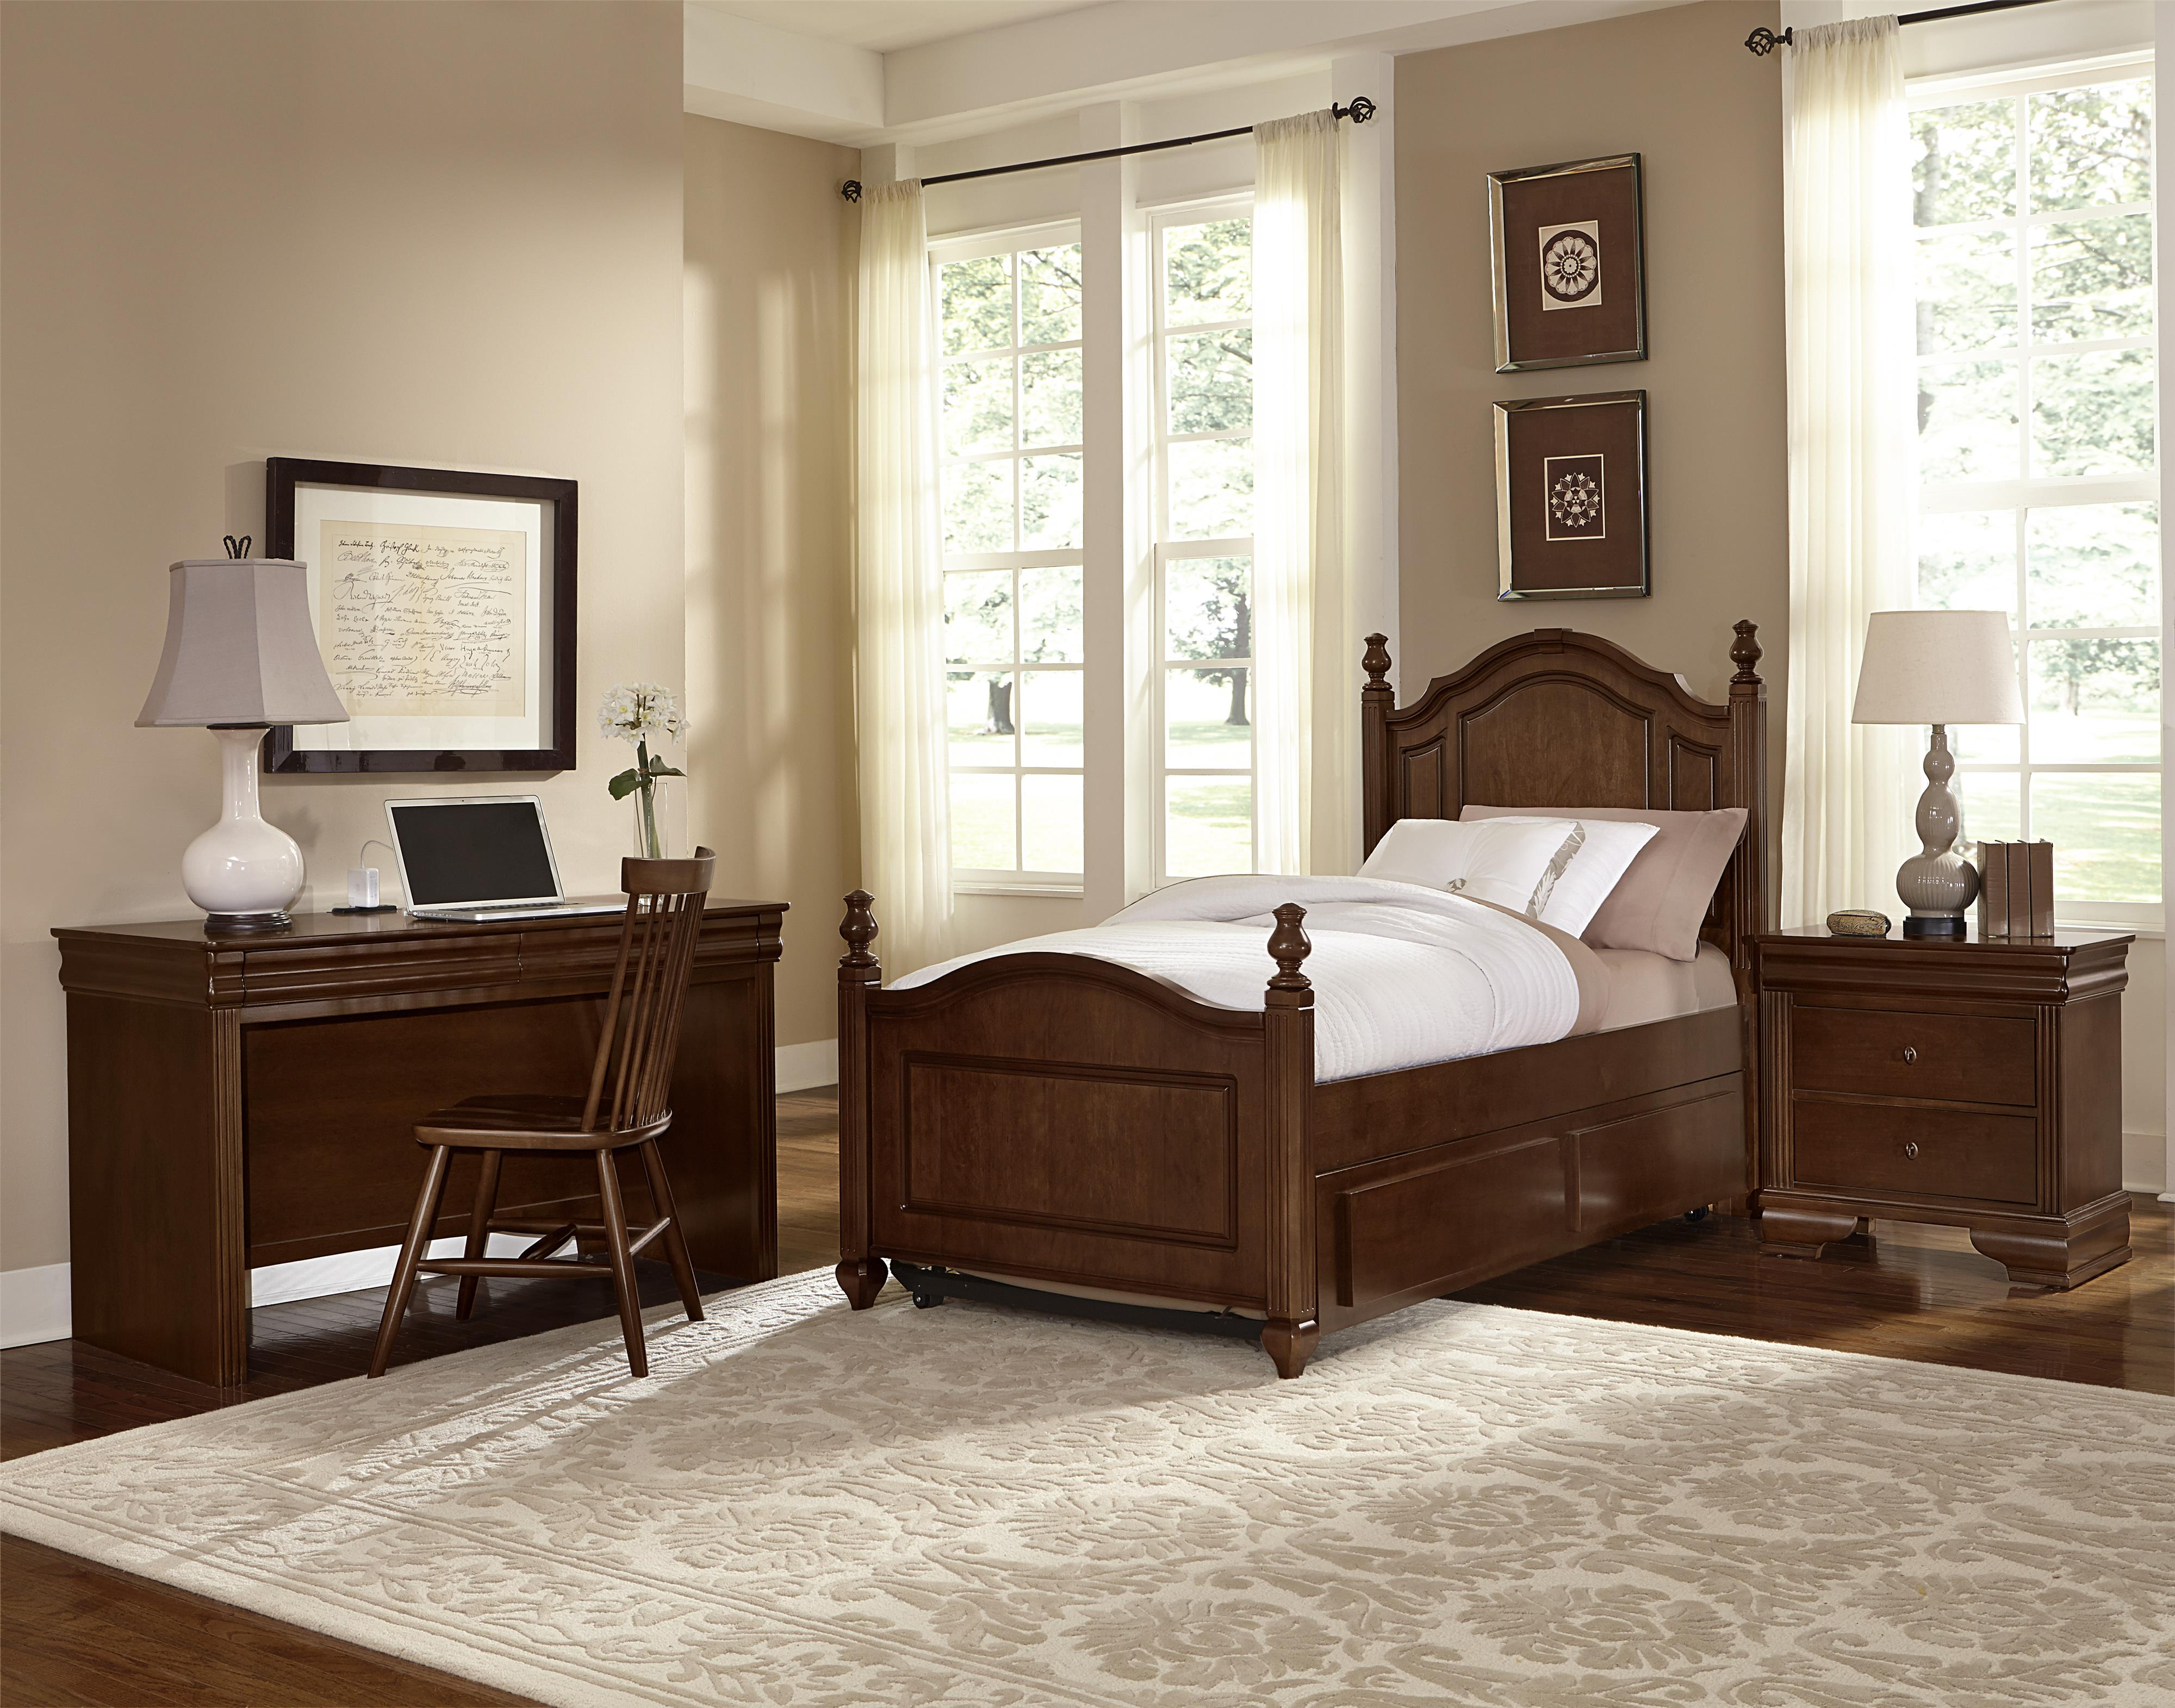 Vaughan Bassett French Market Twin Bedroom Group - Item Number: 382 T Bedroom Group 2